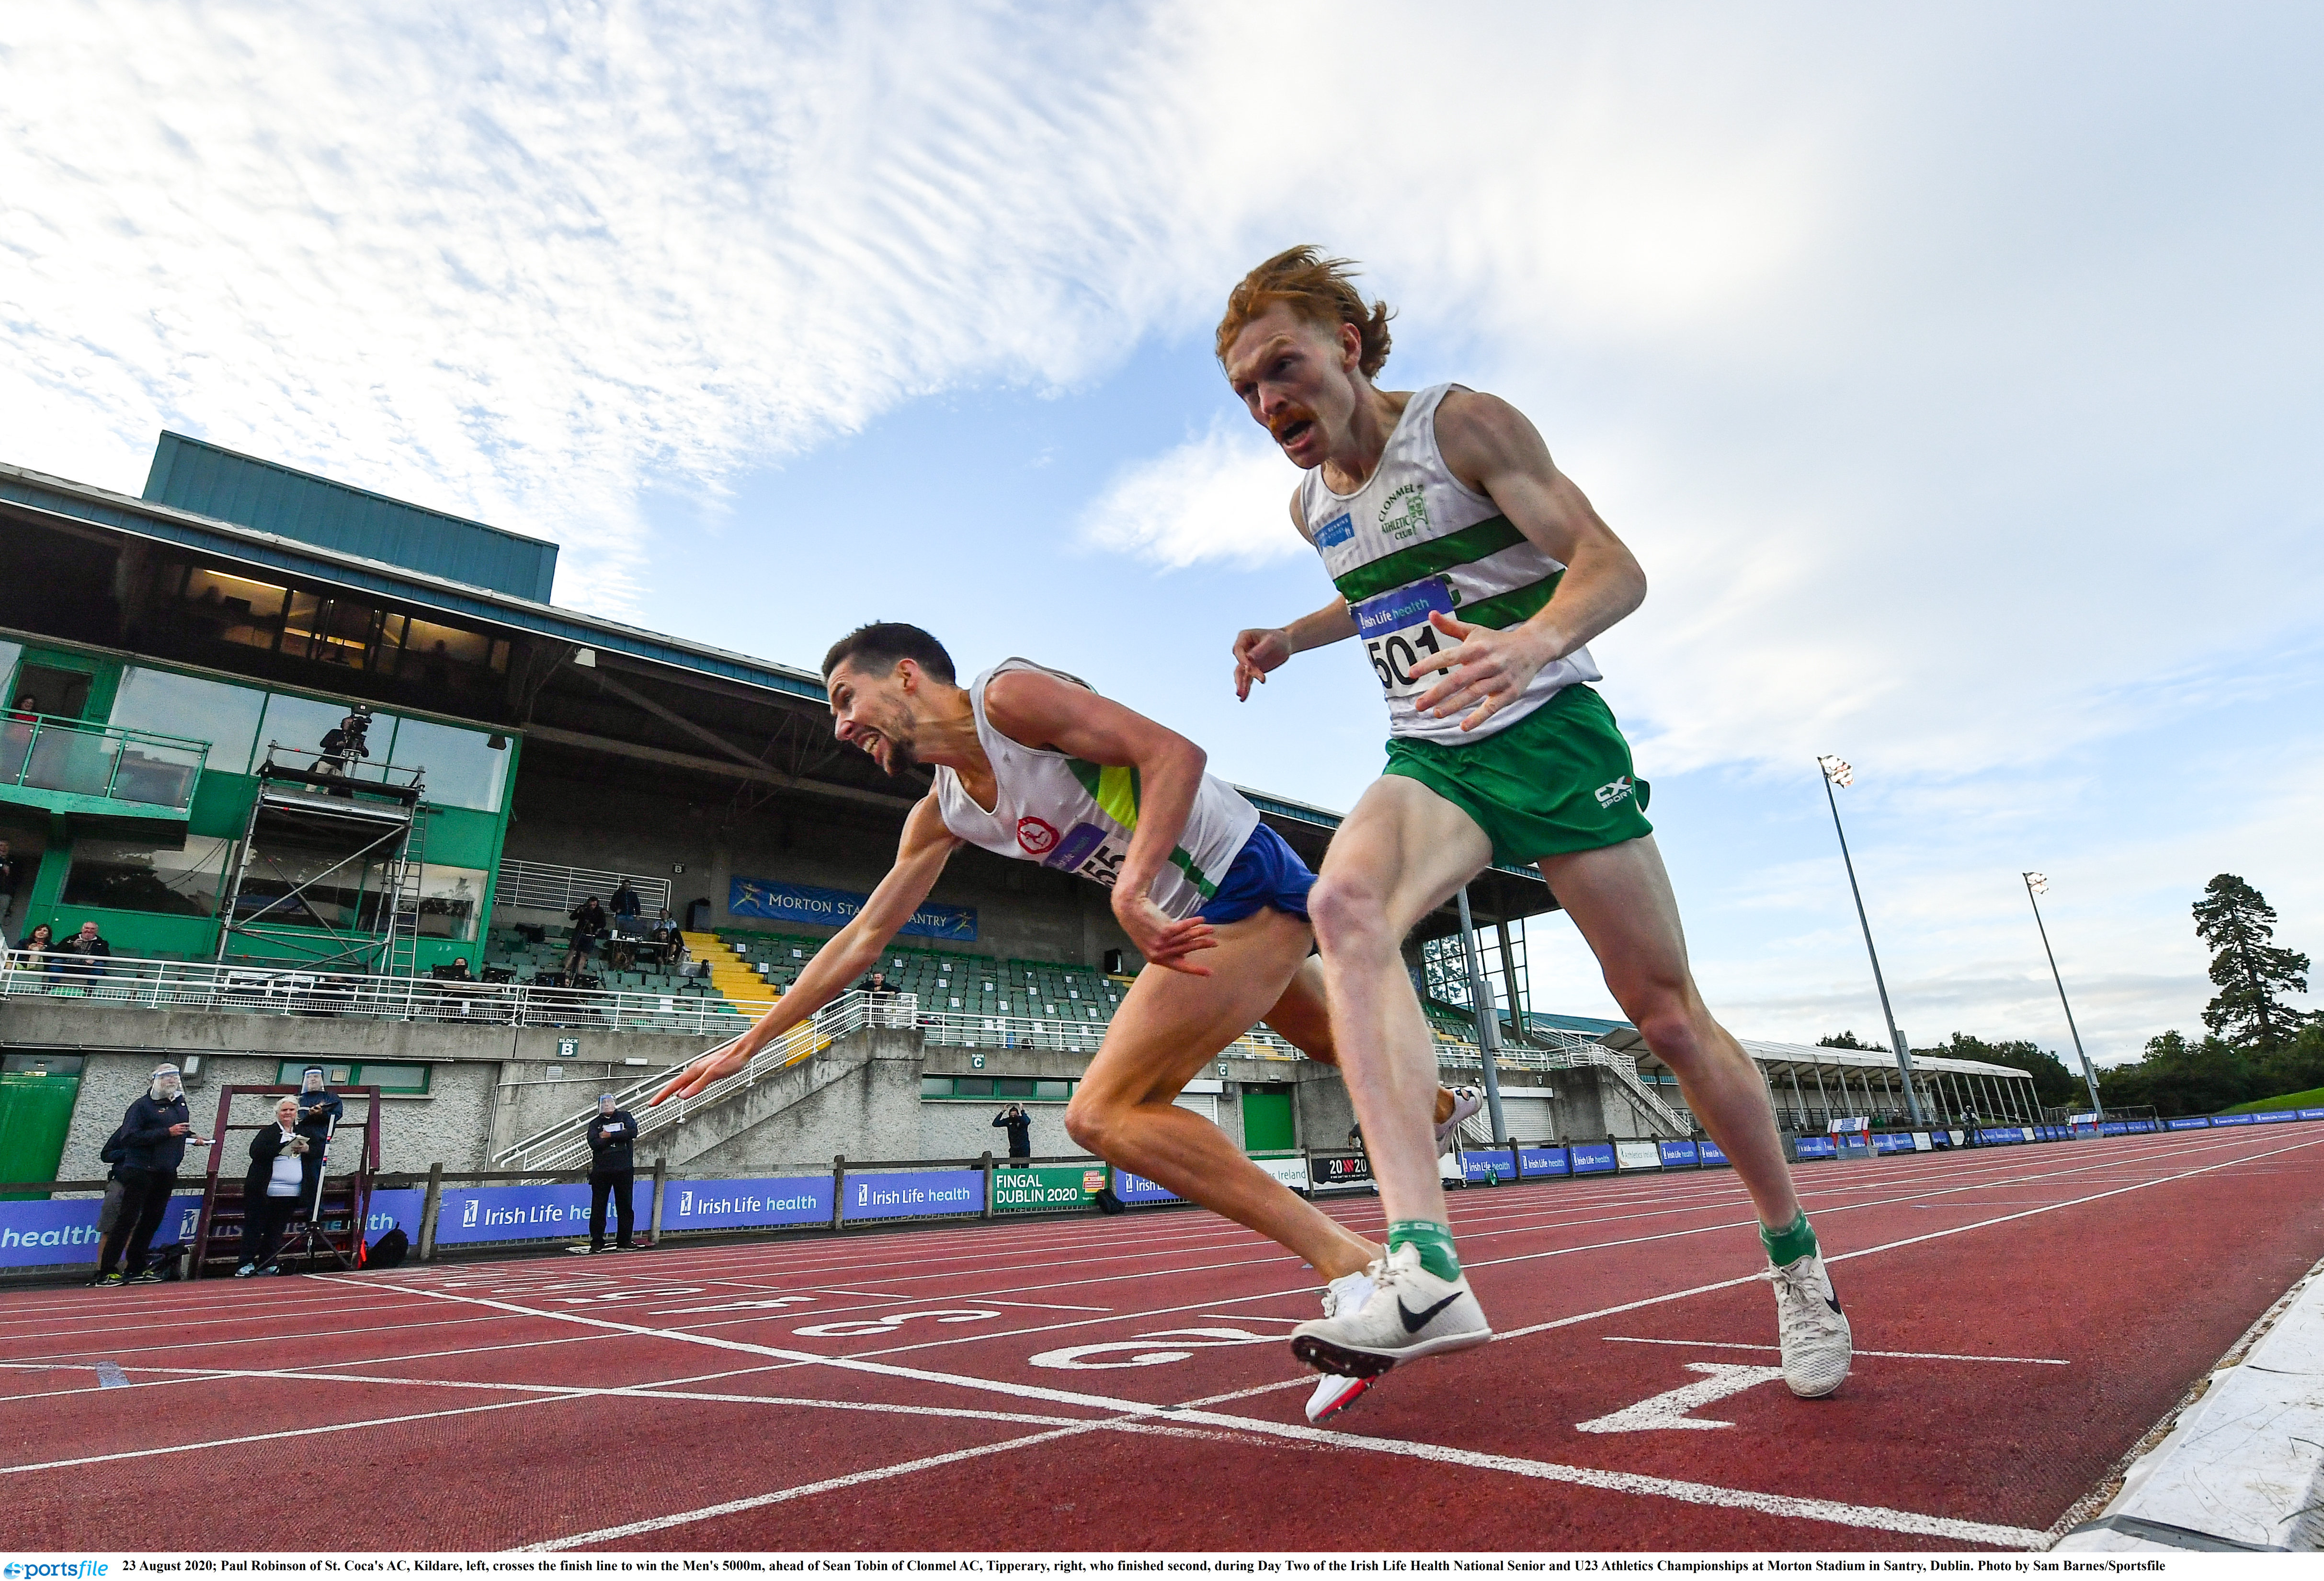 Robinson's Return: thrilling 1500m highlights excellent nationals